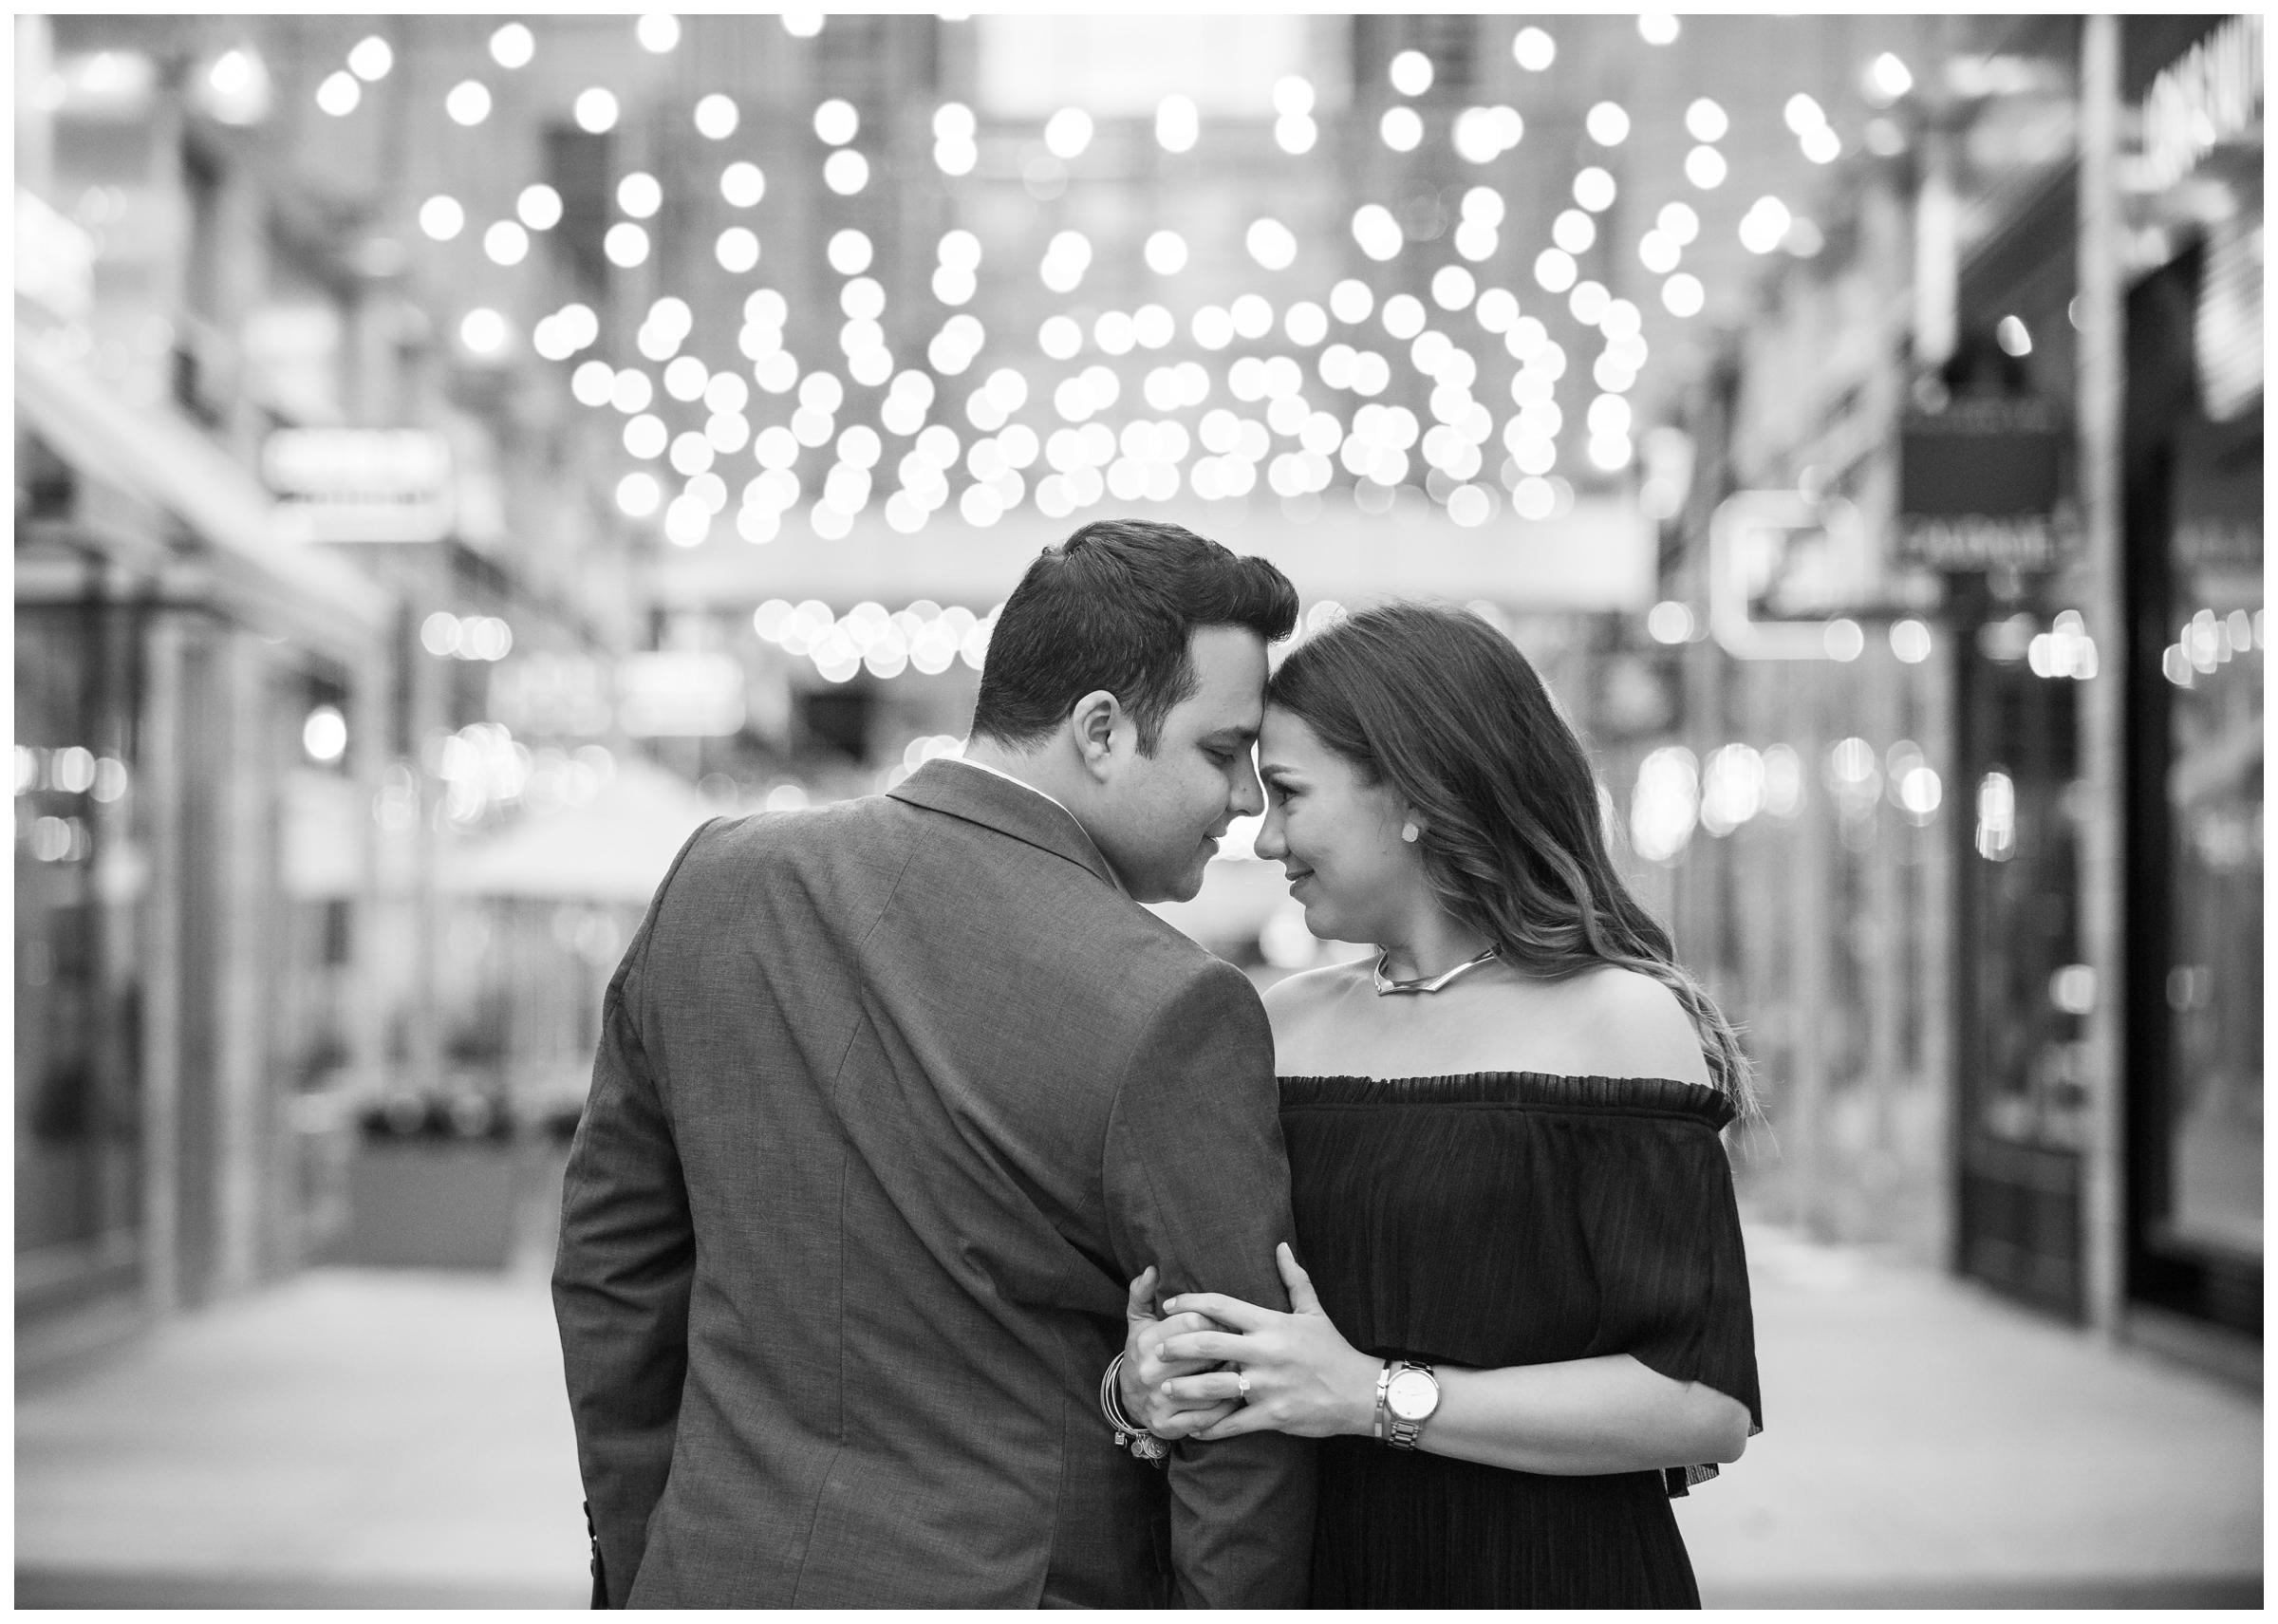 Couple surrounded by string lights during engagement session in City Center, Washington, D.C.